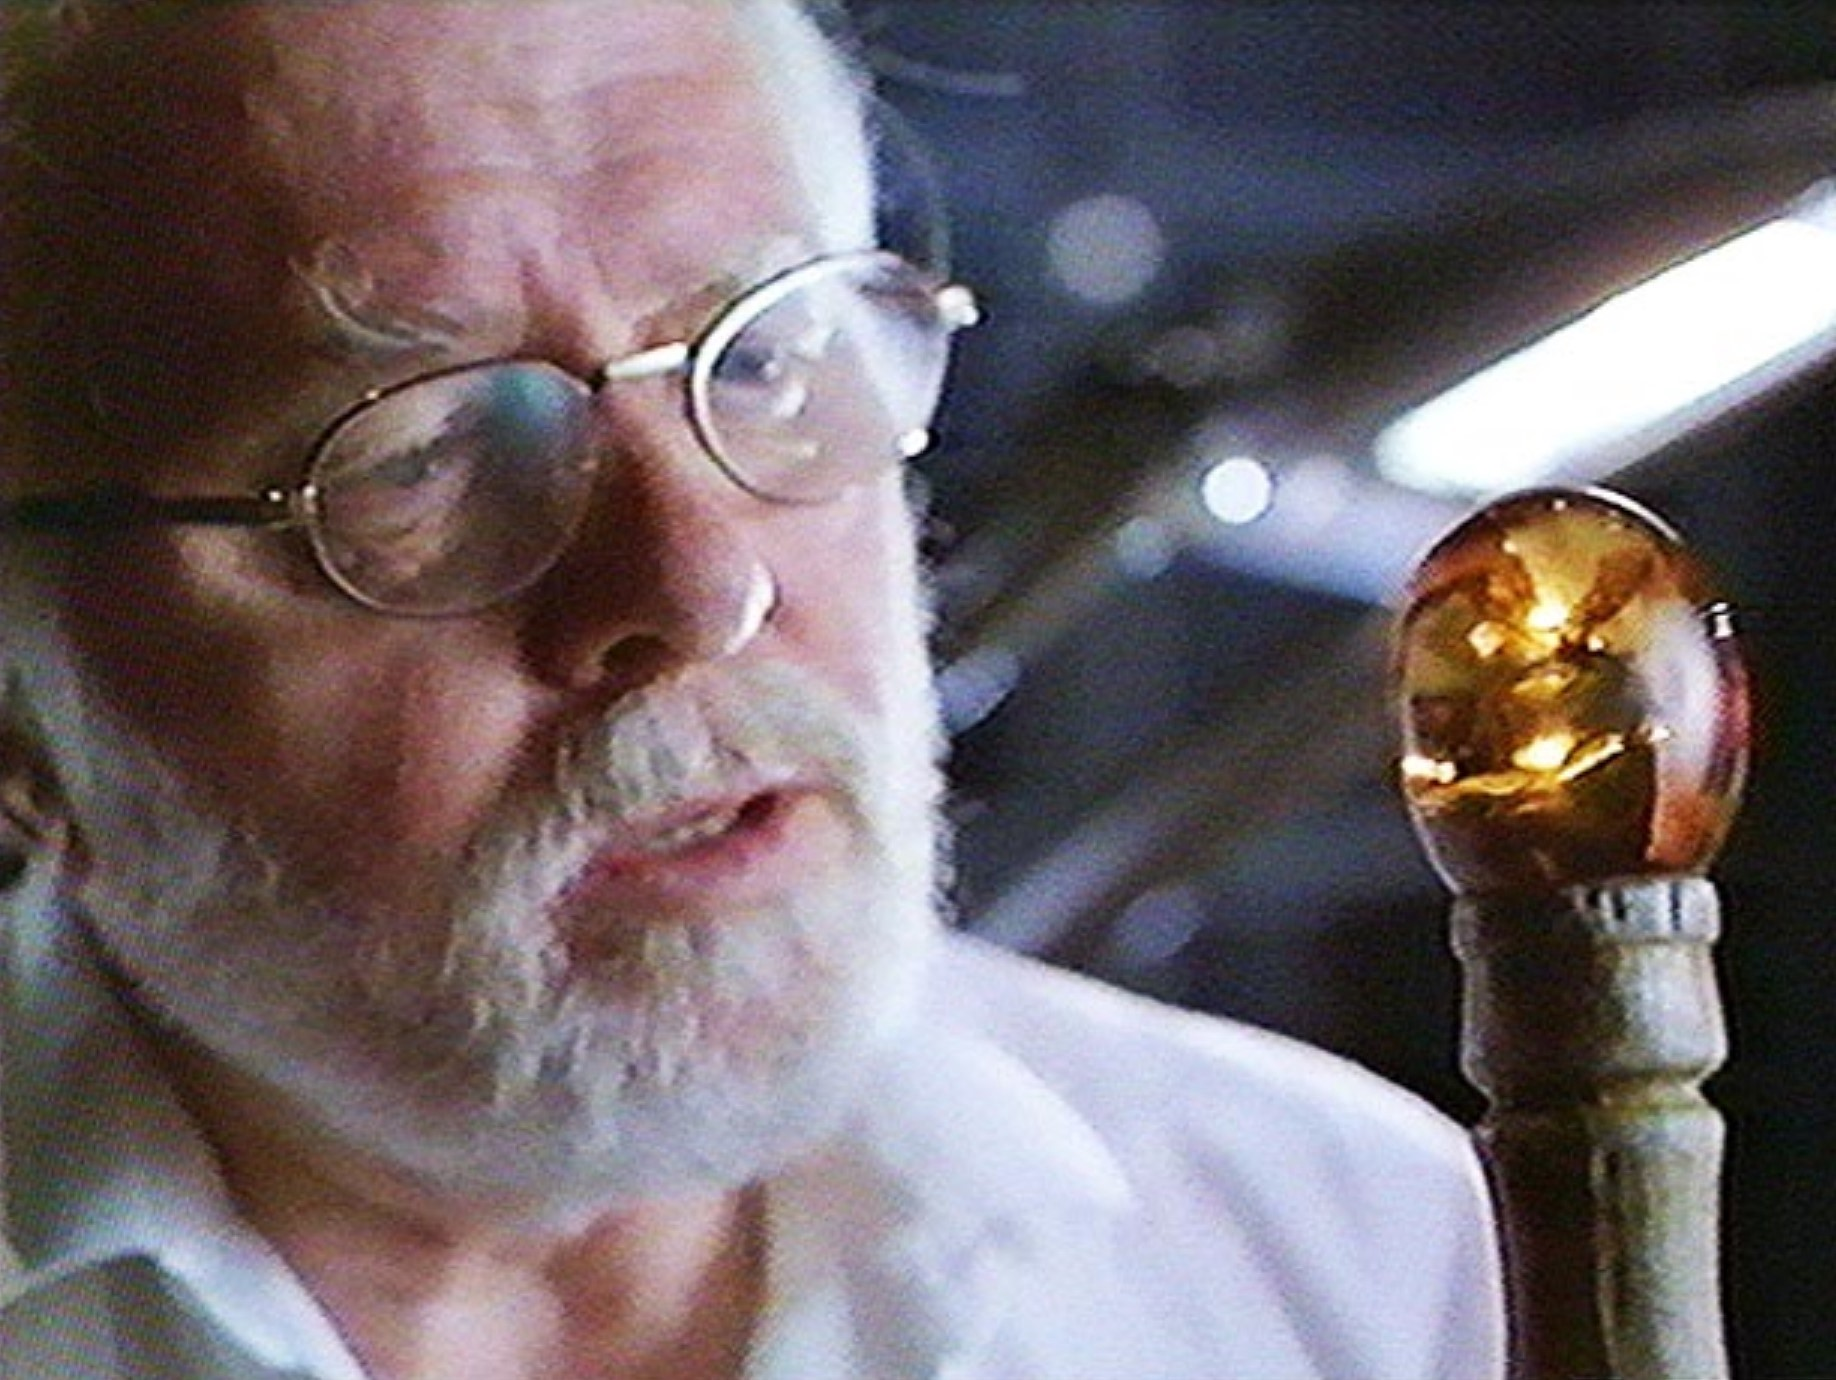 Jurassic Park owner, Hammond, inspects mosquito in amber that is part of his walking stick